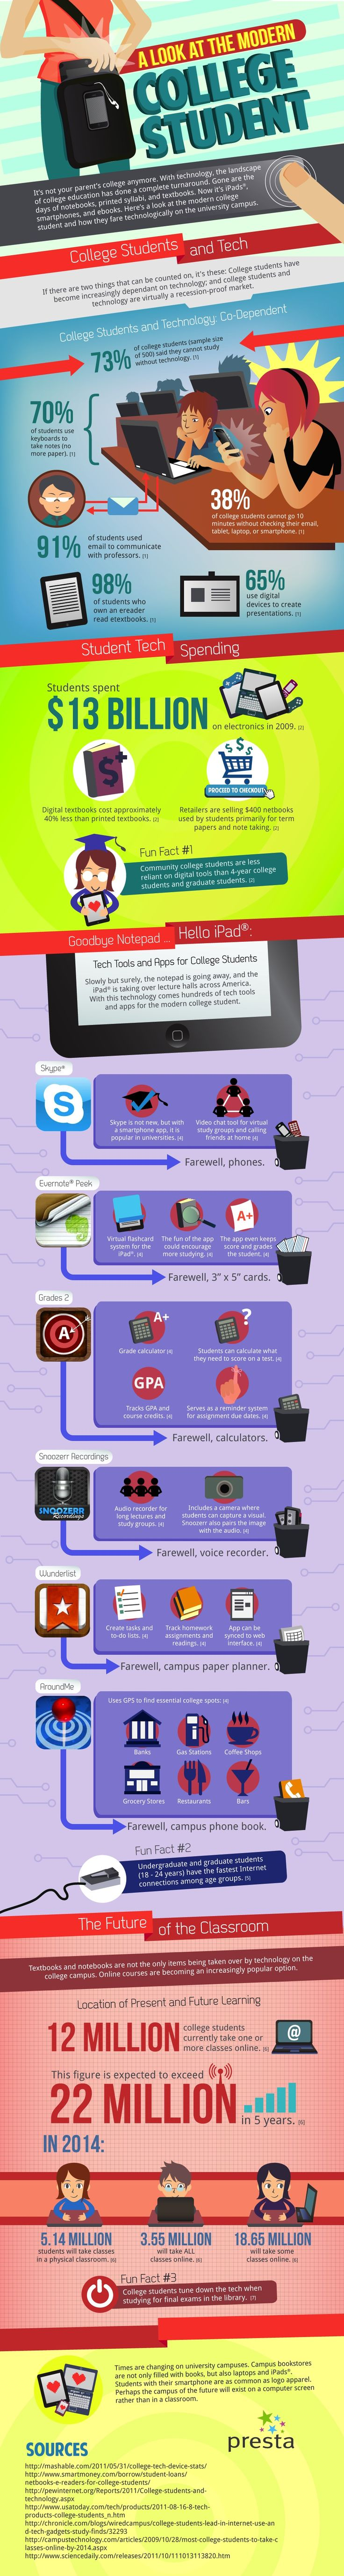 The modern college student (infographic)